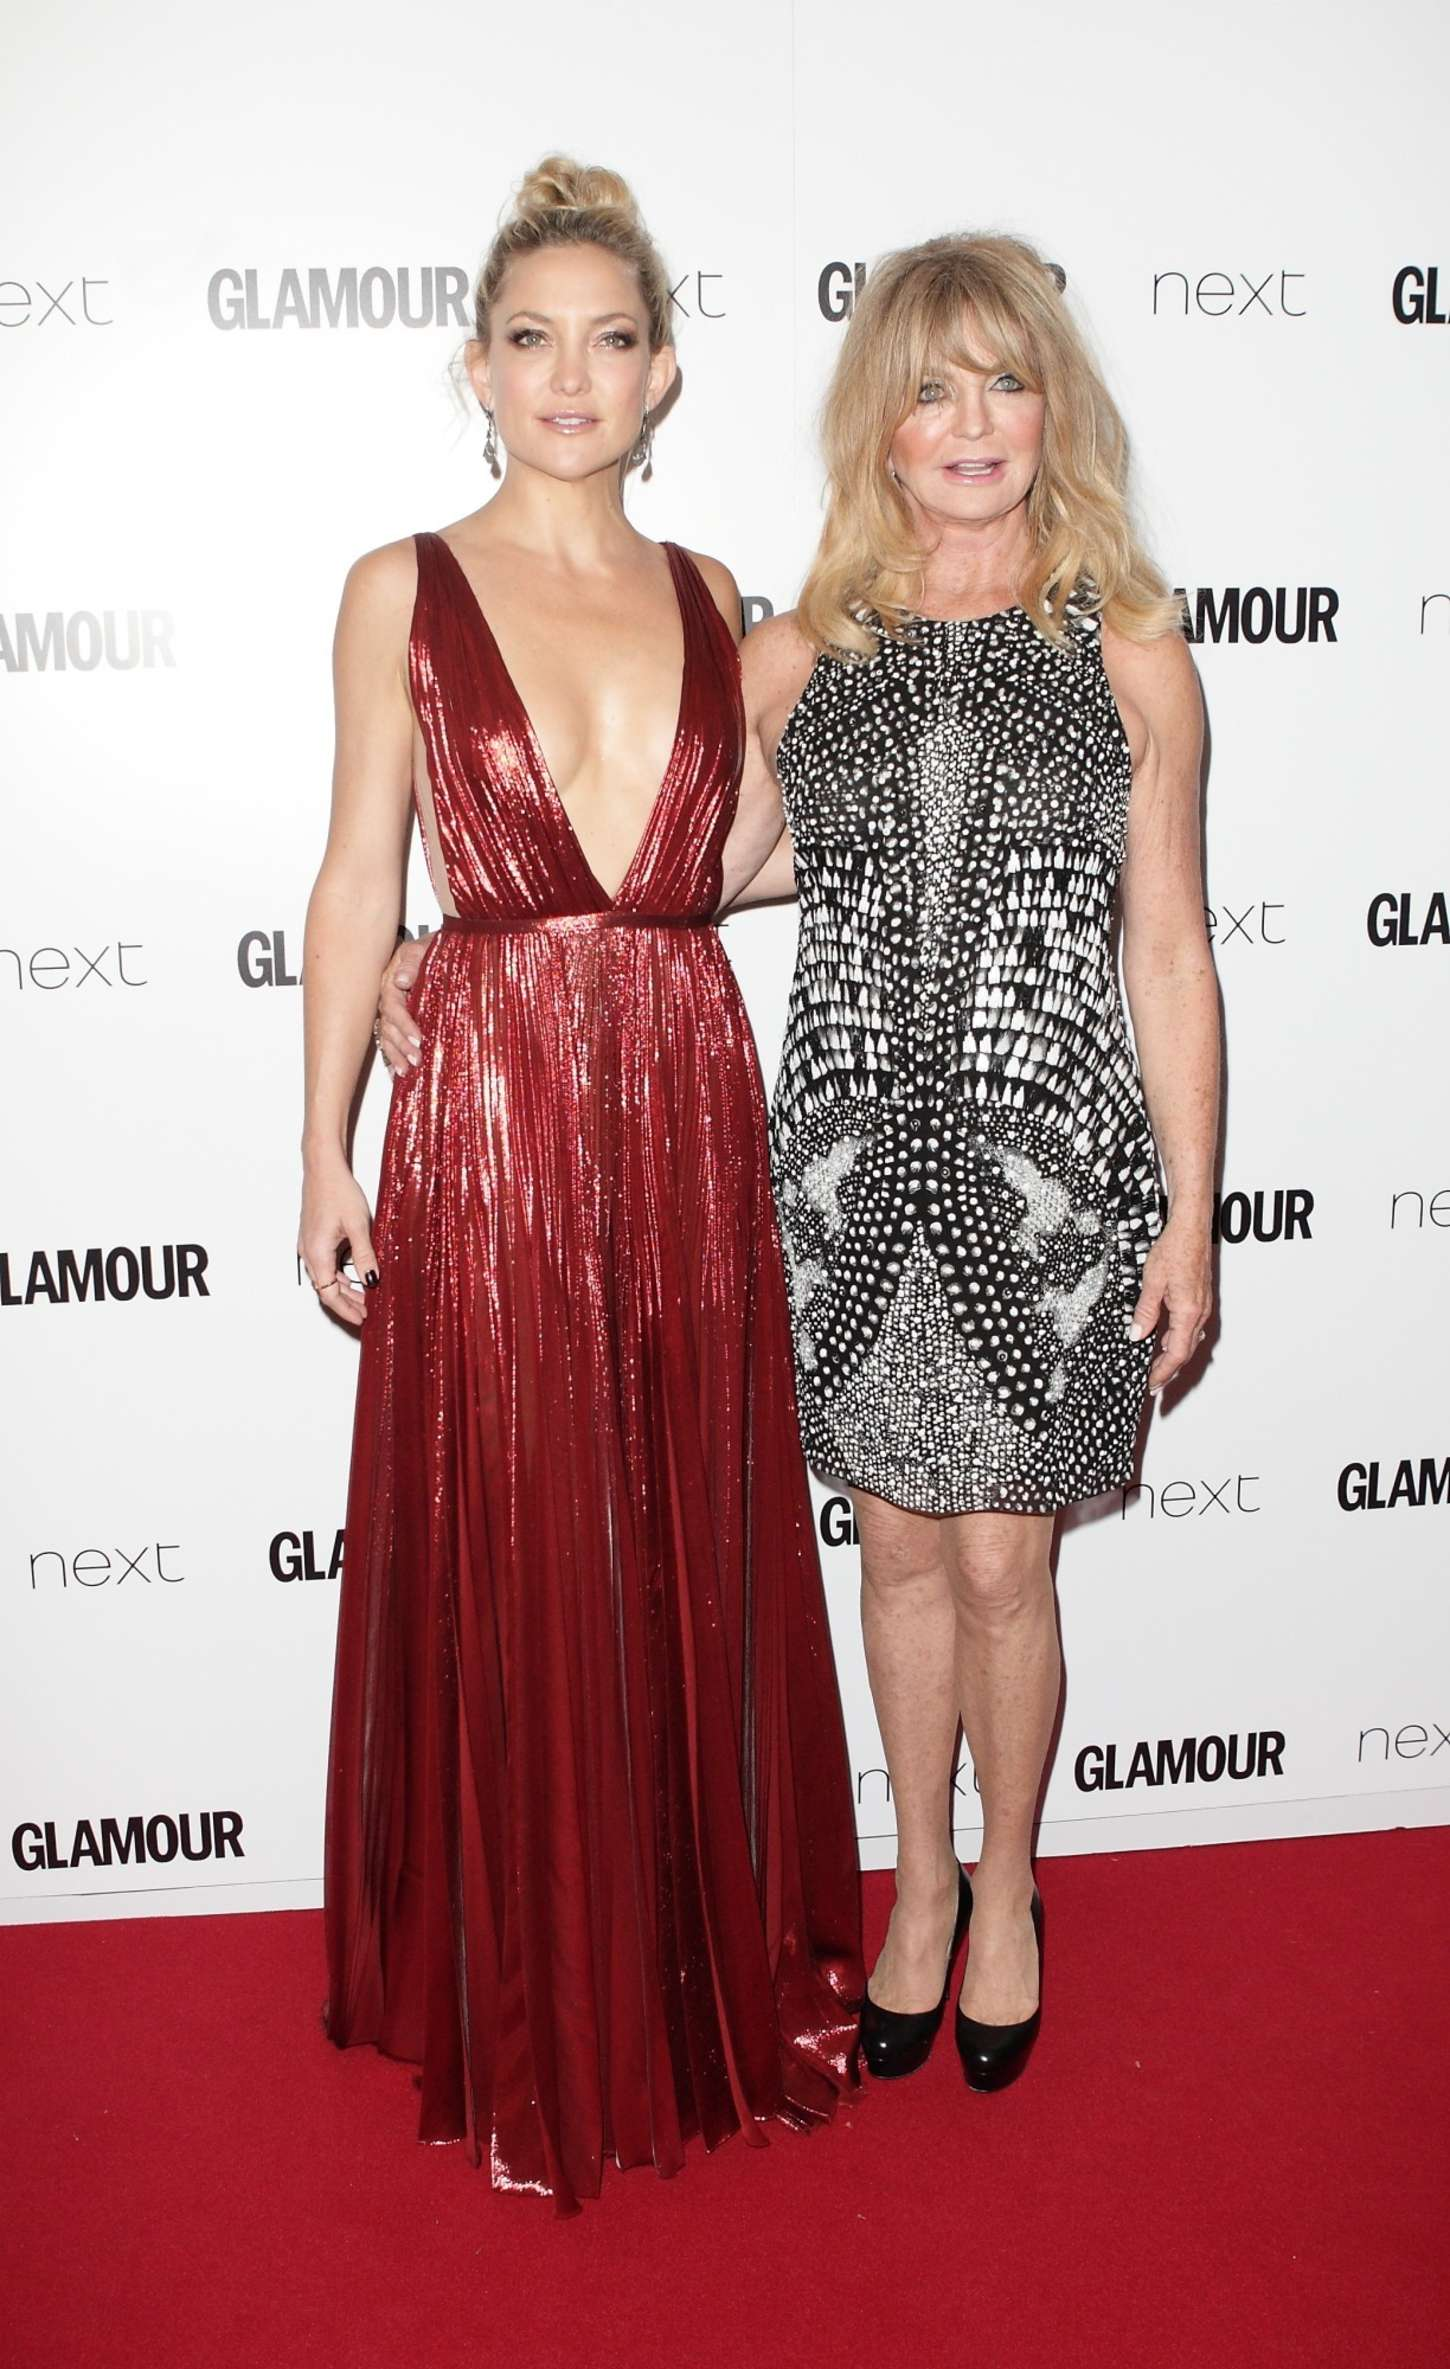 Kate-Hudson--Glamour-Women-Of-The-Year-Awards-2015--08.jpg